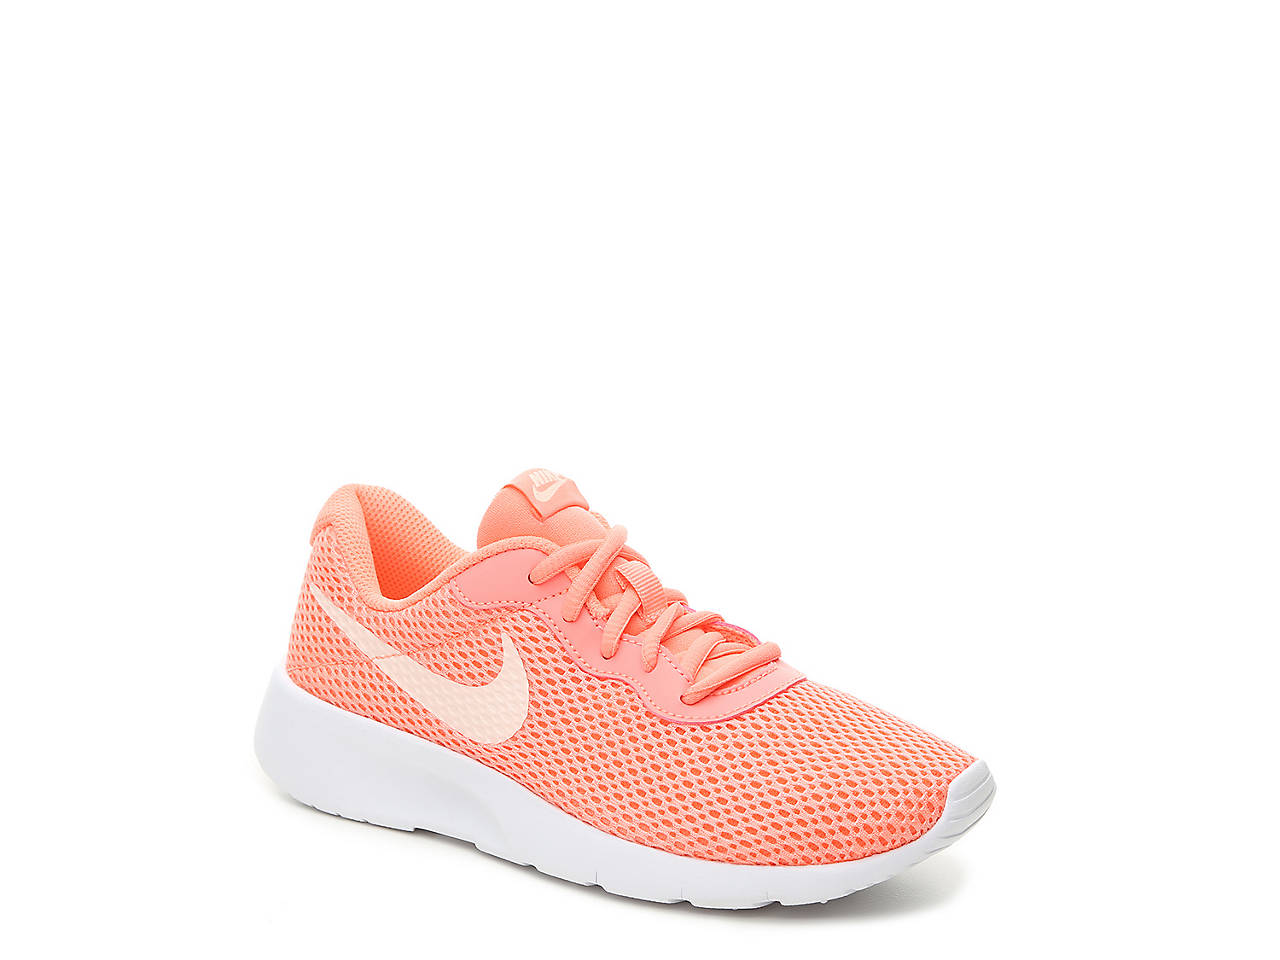 sale retailer 9e81e 7a3d3 Nike. Tanjun Youth Running Shoe